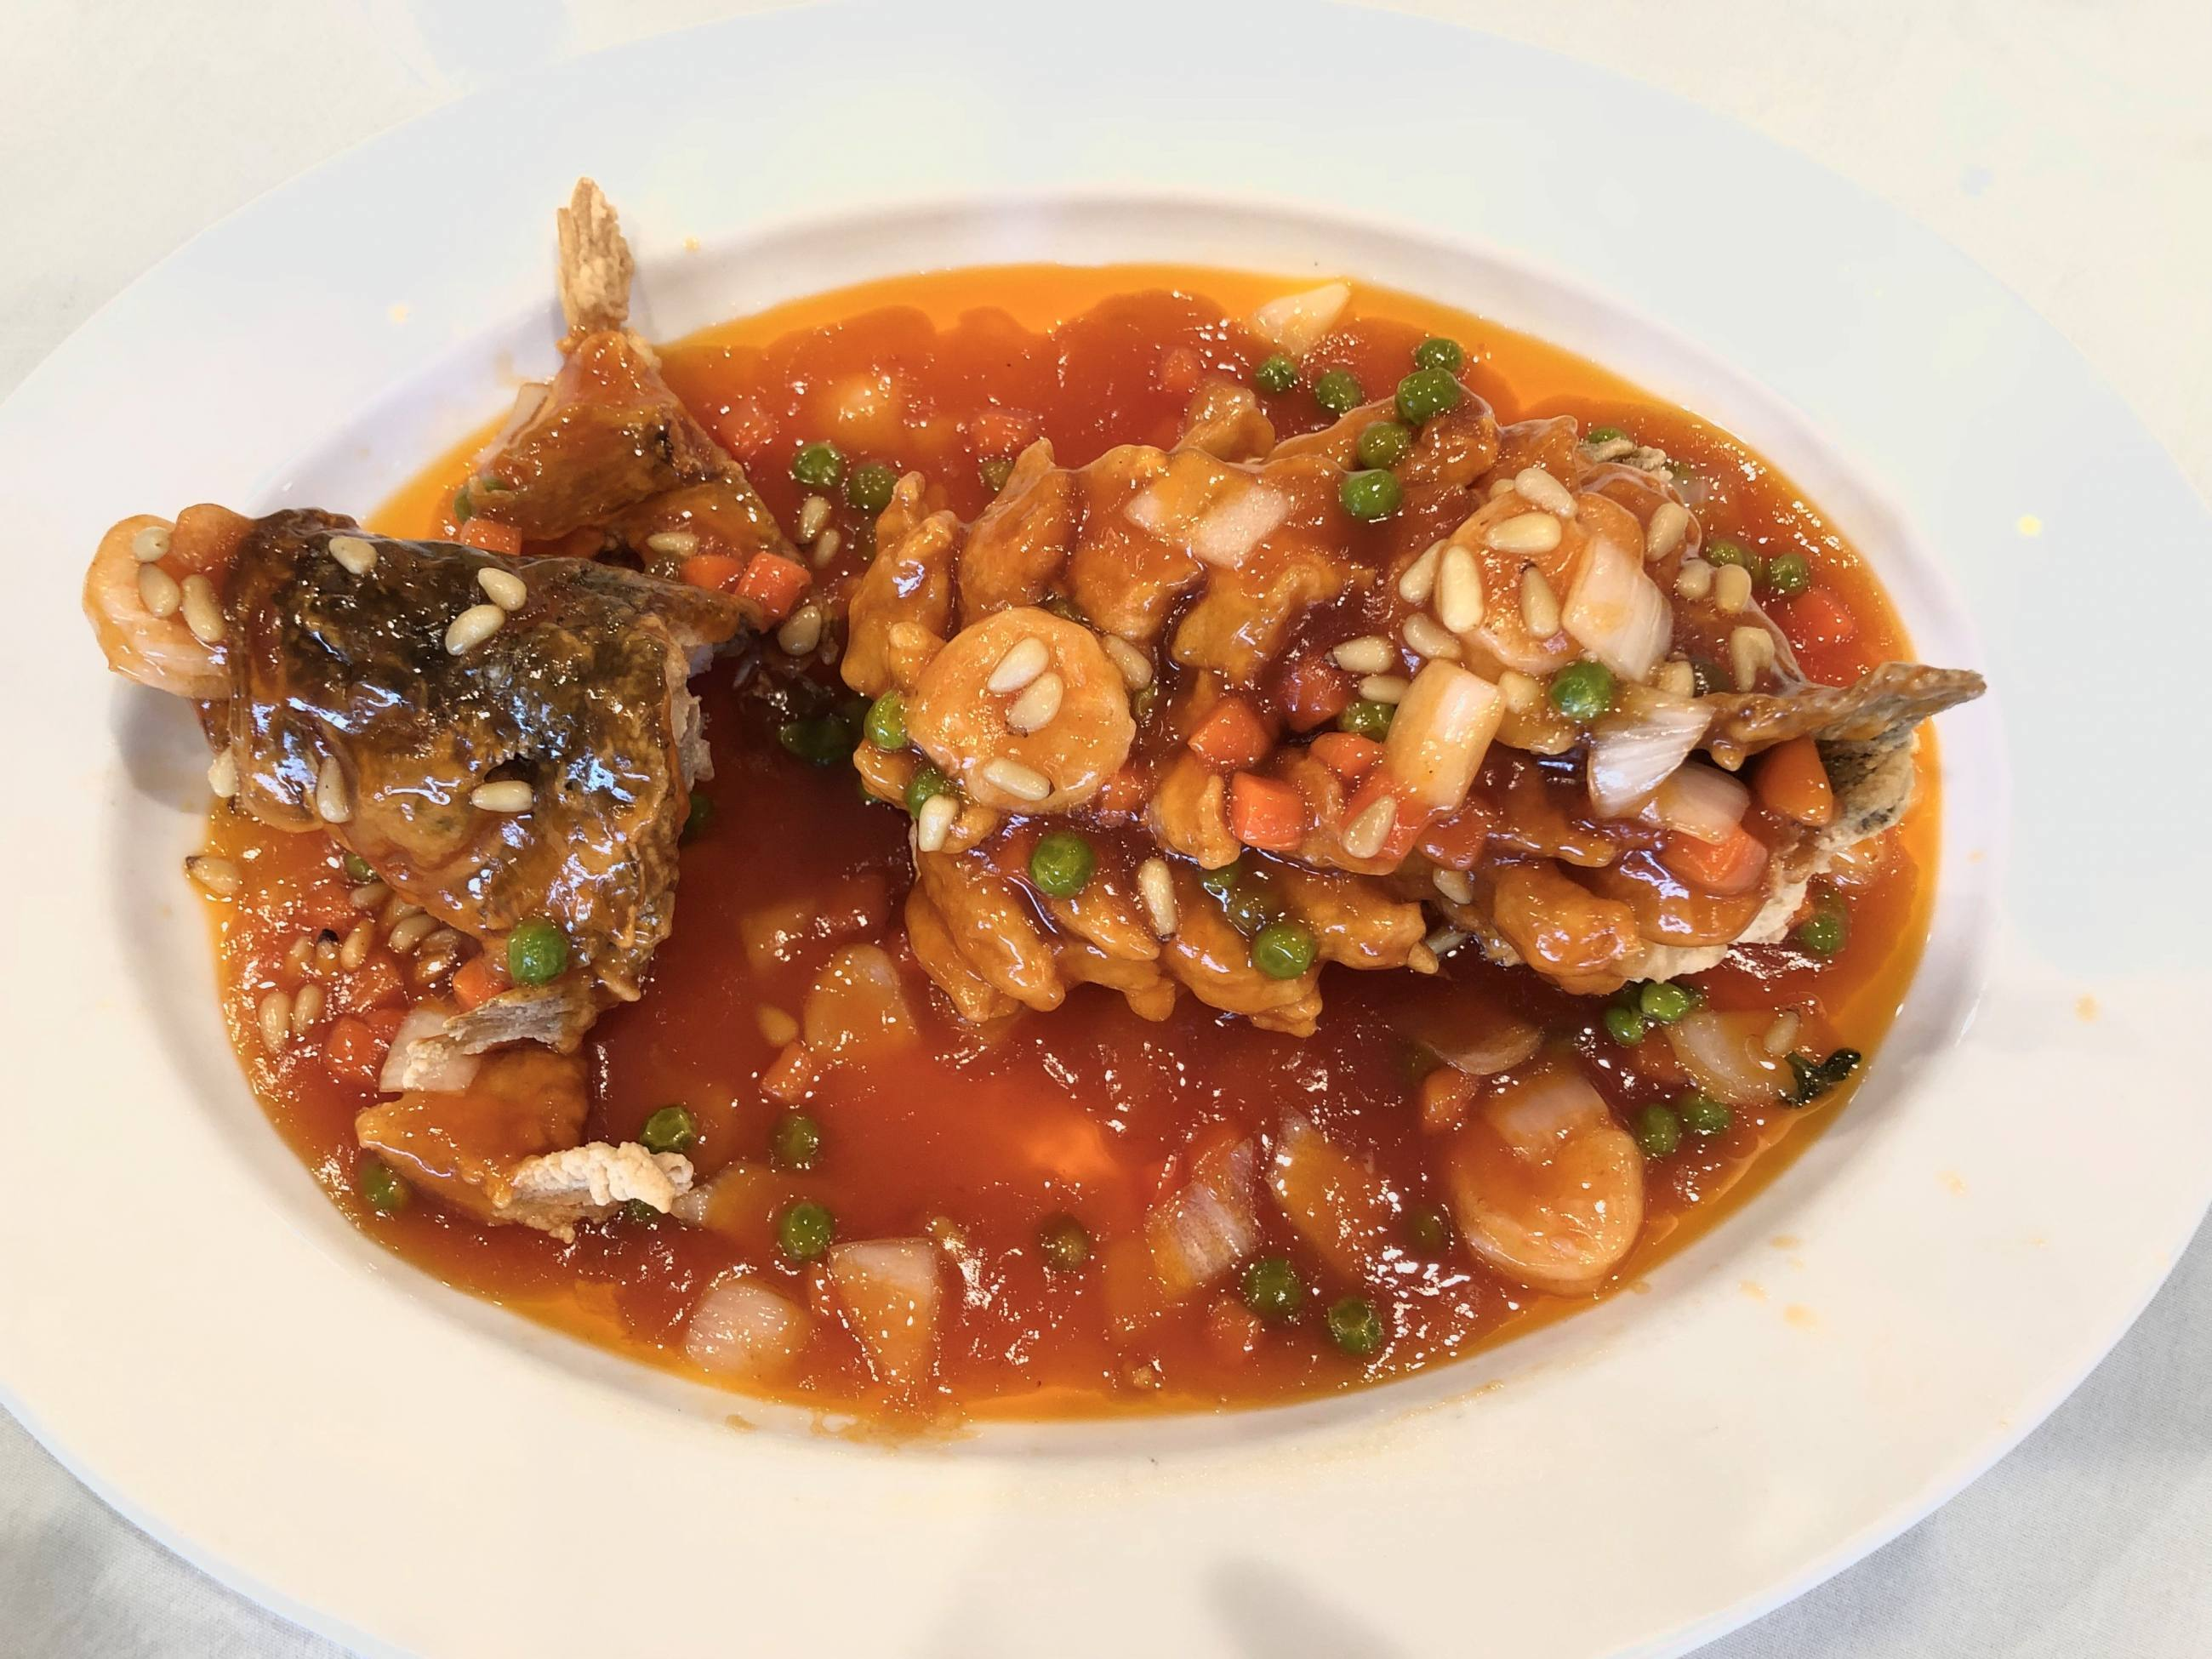 yellow-fish-in-sour-and-tomato-sauce-in-shanghai-restaurant